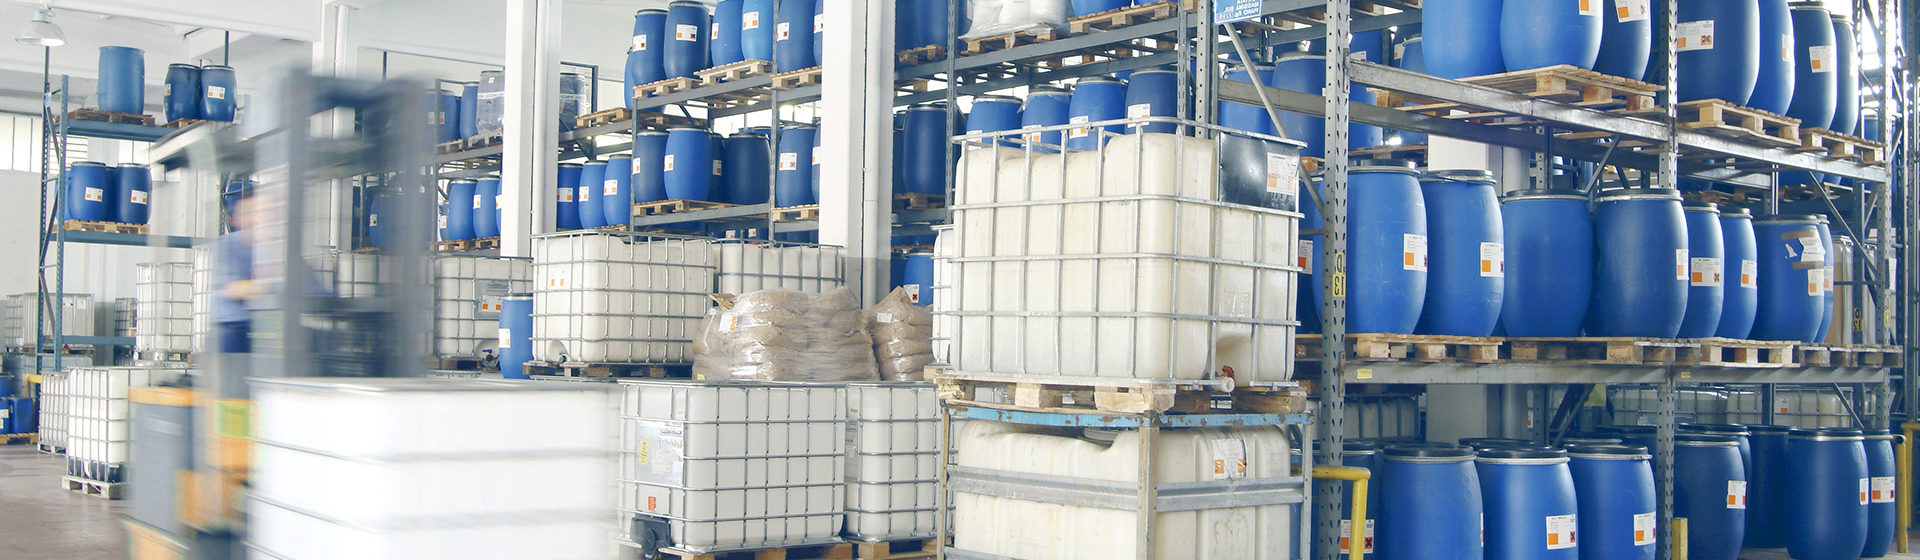 Agrochemical Operational Efficiency